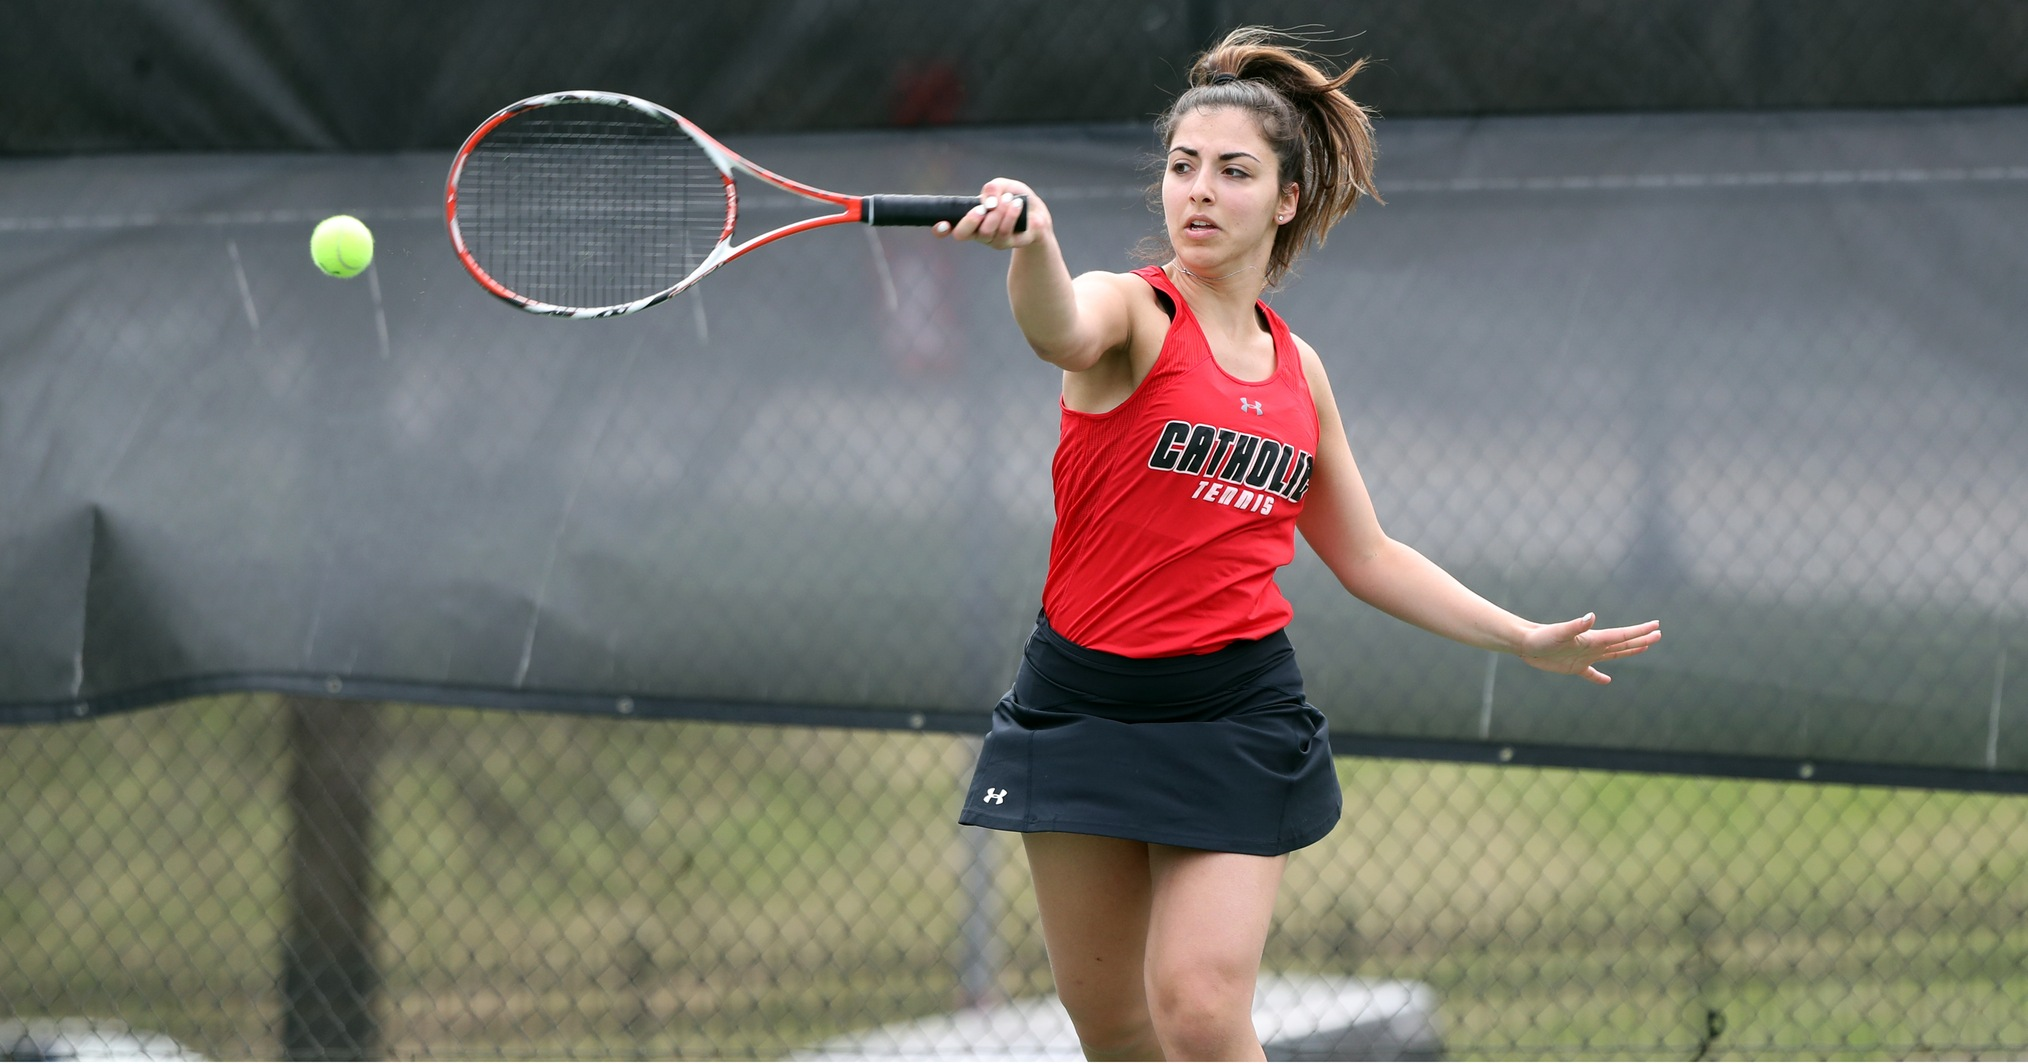 McLaughlin Posts Two Wins in 6-3 Loss at Goucher